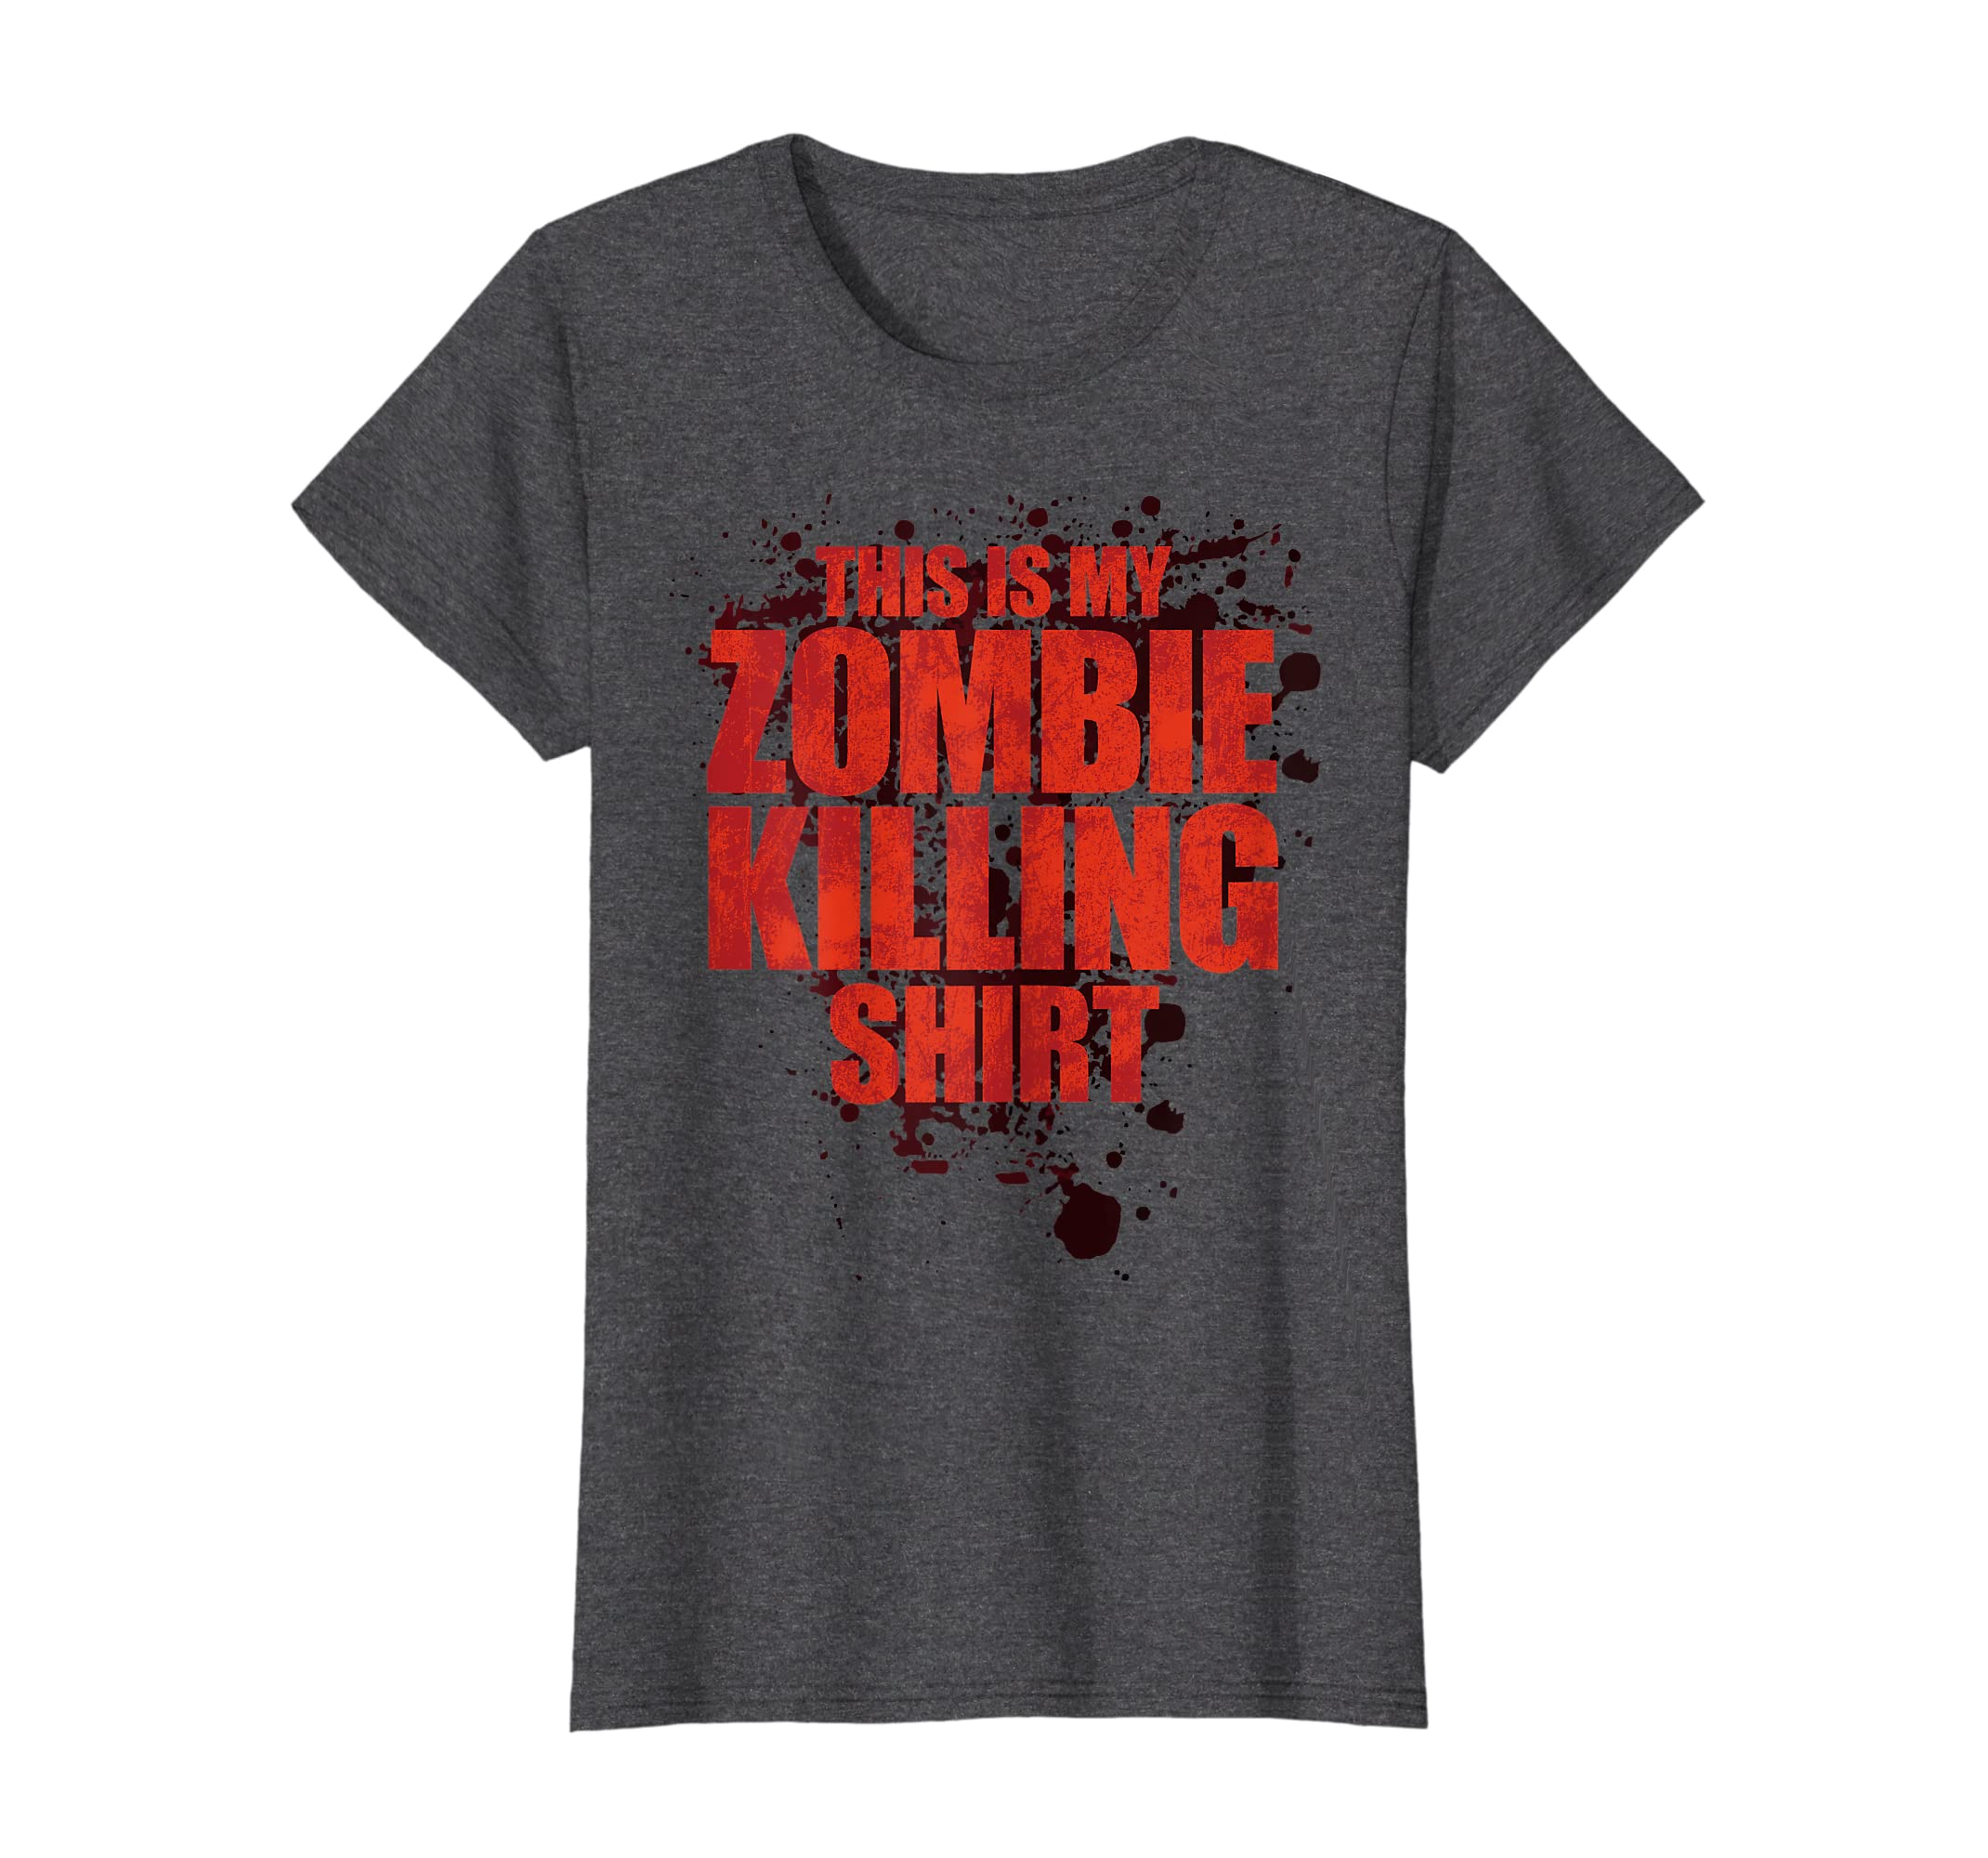 612afd721 Amazon.com: Funny This Is My Zombie Killing Shirt Apocalypse T-shirt:  Clothing